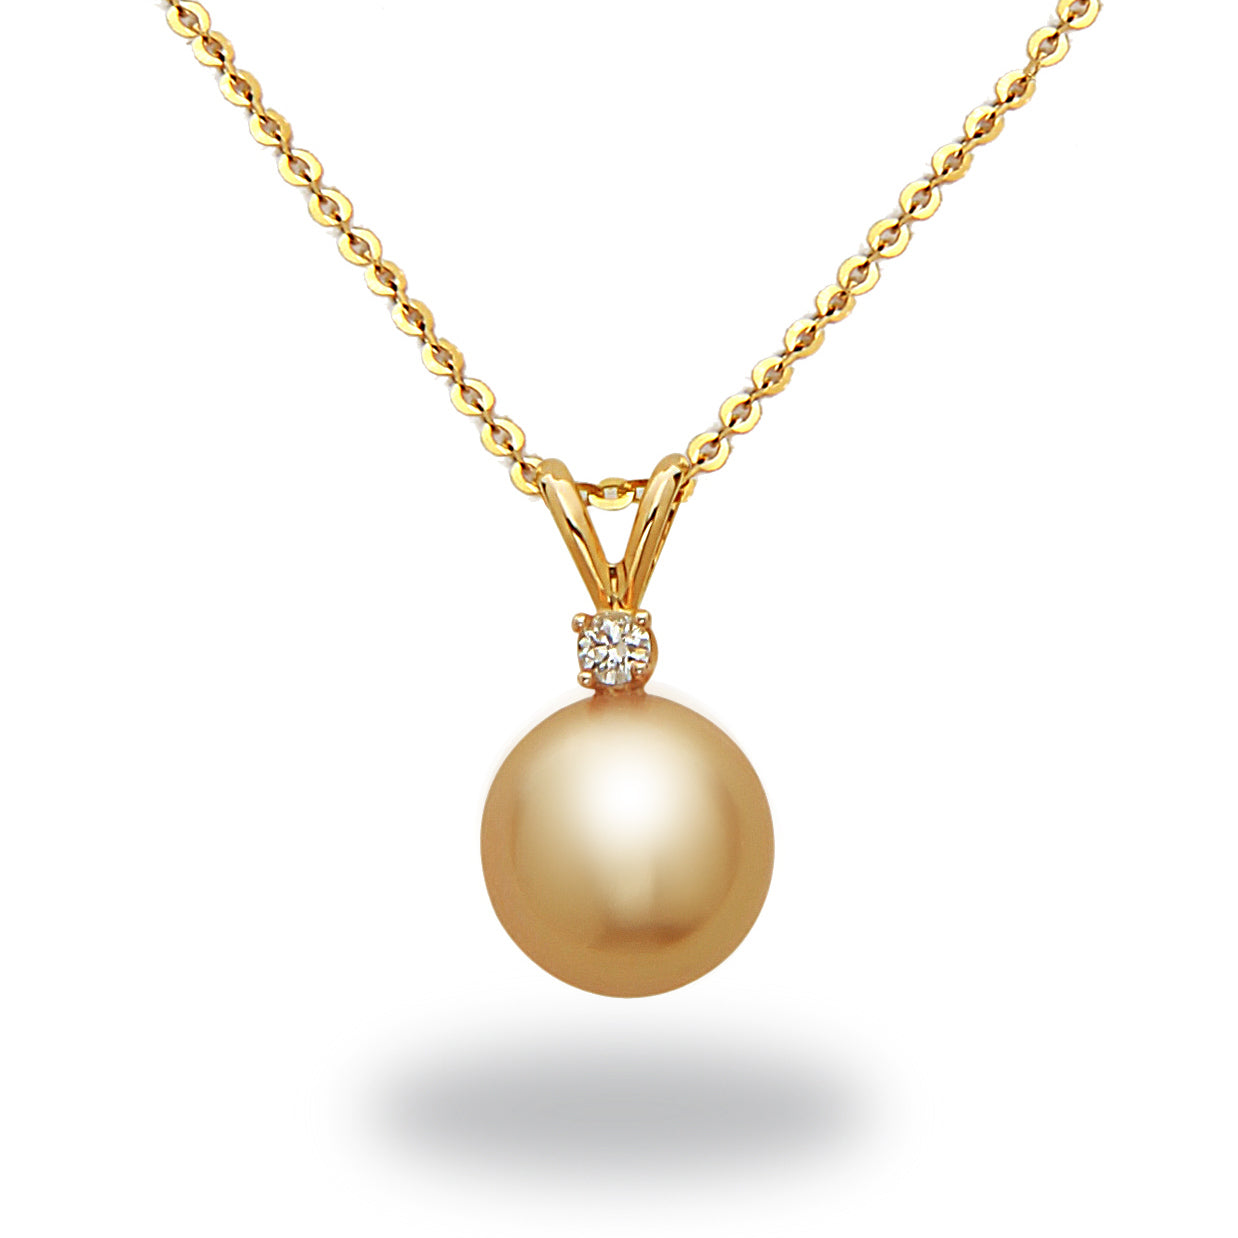 9-10mm Gold South Sea Cultured Pearl and Diamond Pendant Necklace